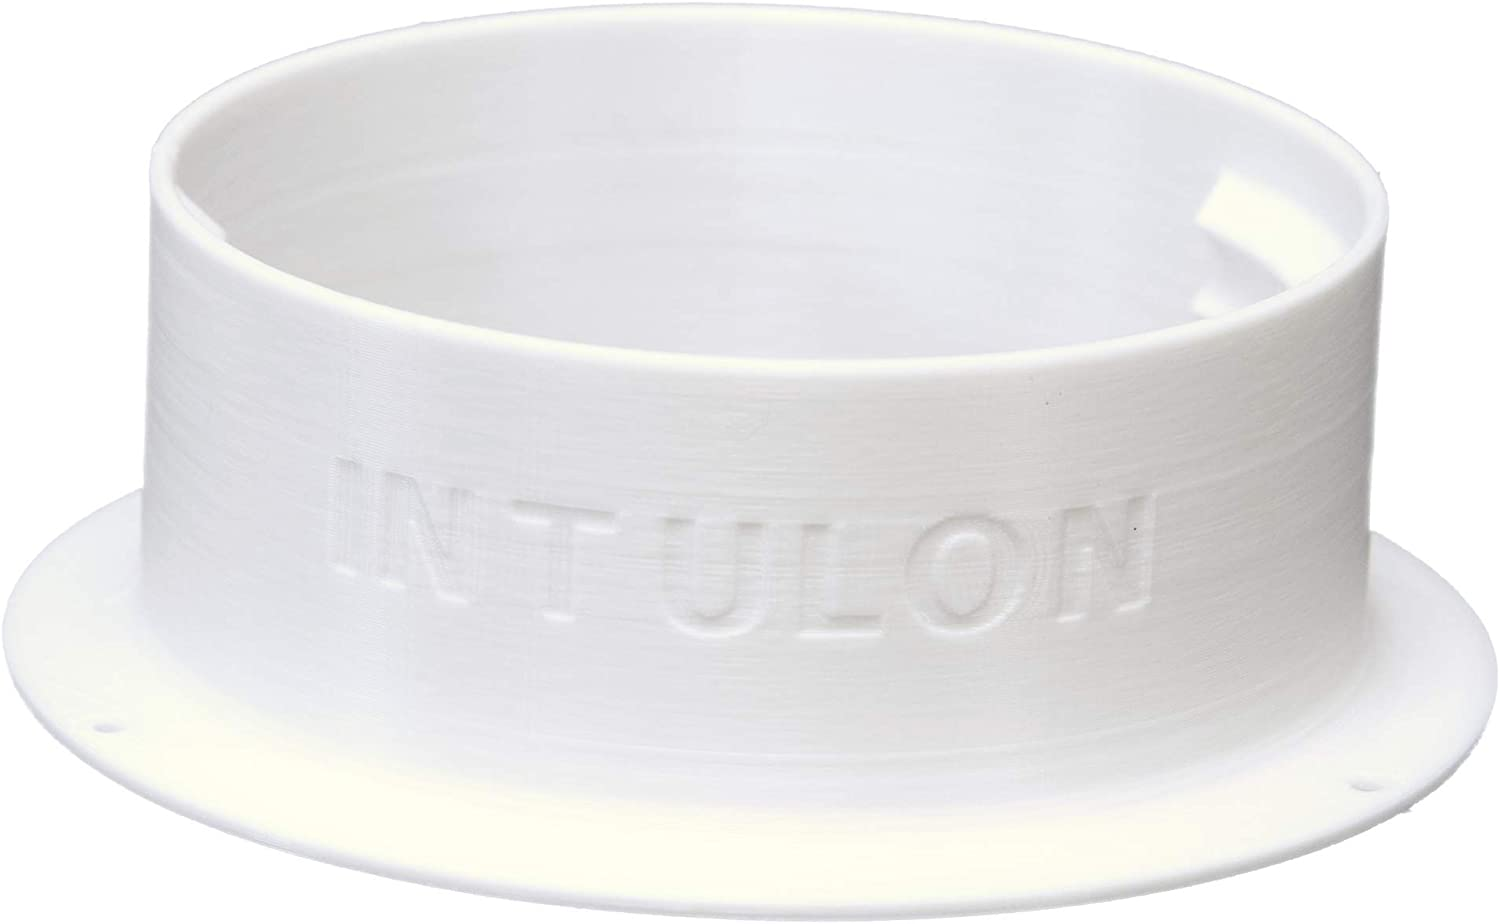 intulon Portable A/C AC Air Conditioner Exhaust Hose Flange Wall Mount - Omnidirectional Clockwise Counterclockwise 6MNT (6 inch)